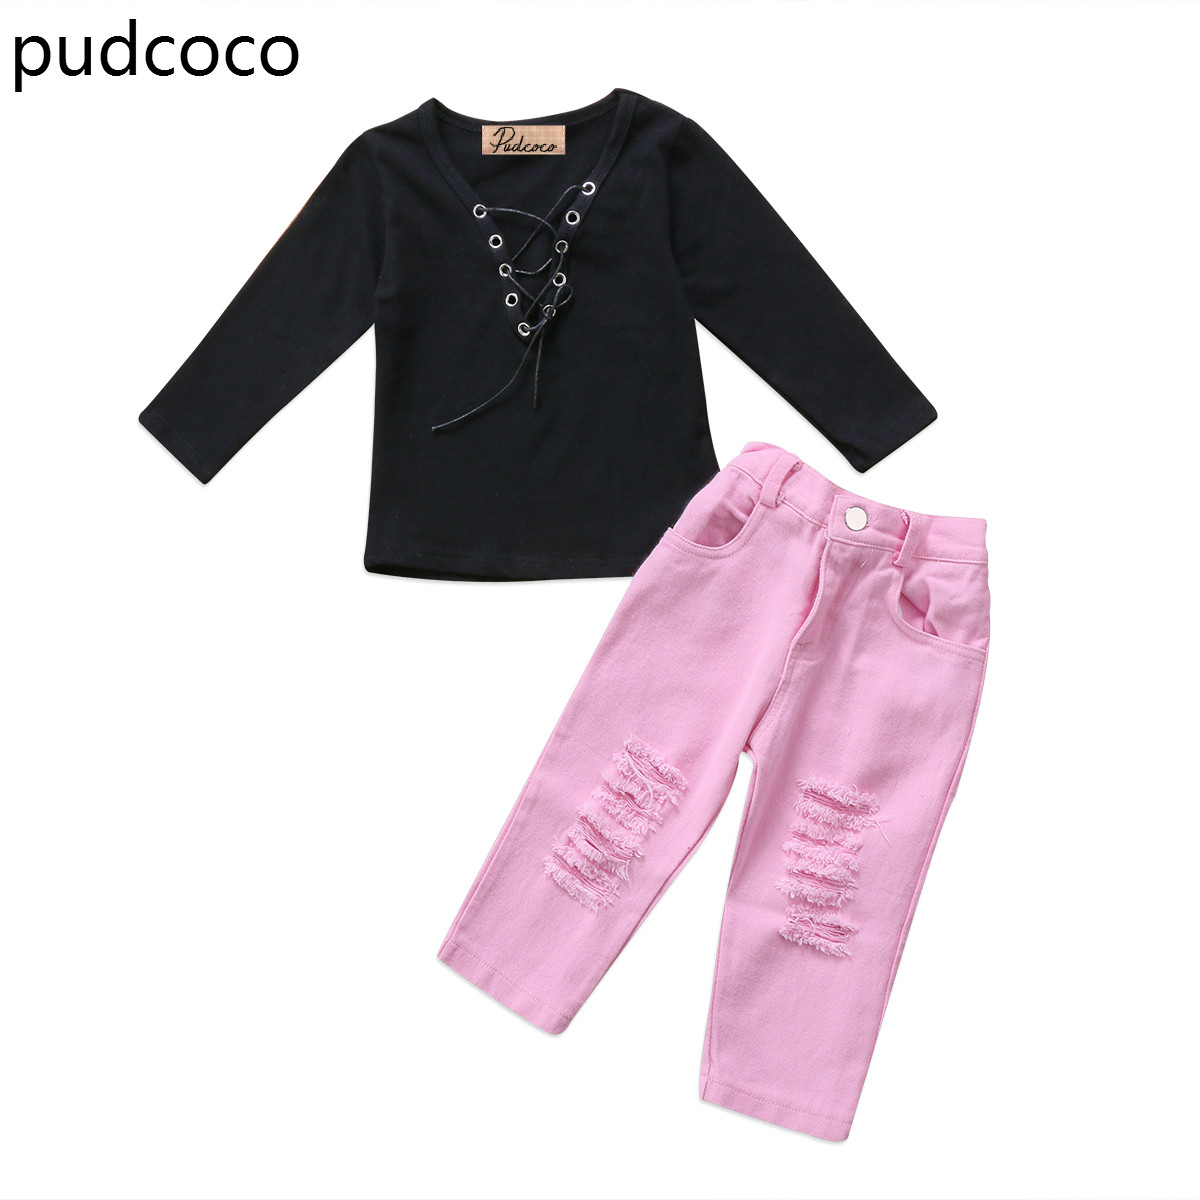 Fashion Kids Girls Black Bandage Tops Ripped Long Jeans Pants Clothes Outfit 2pcs Autumn Baby Clothing Set 0-5Y